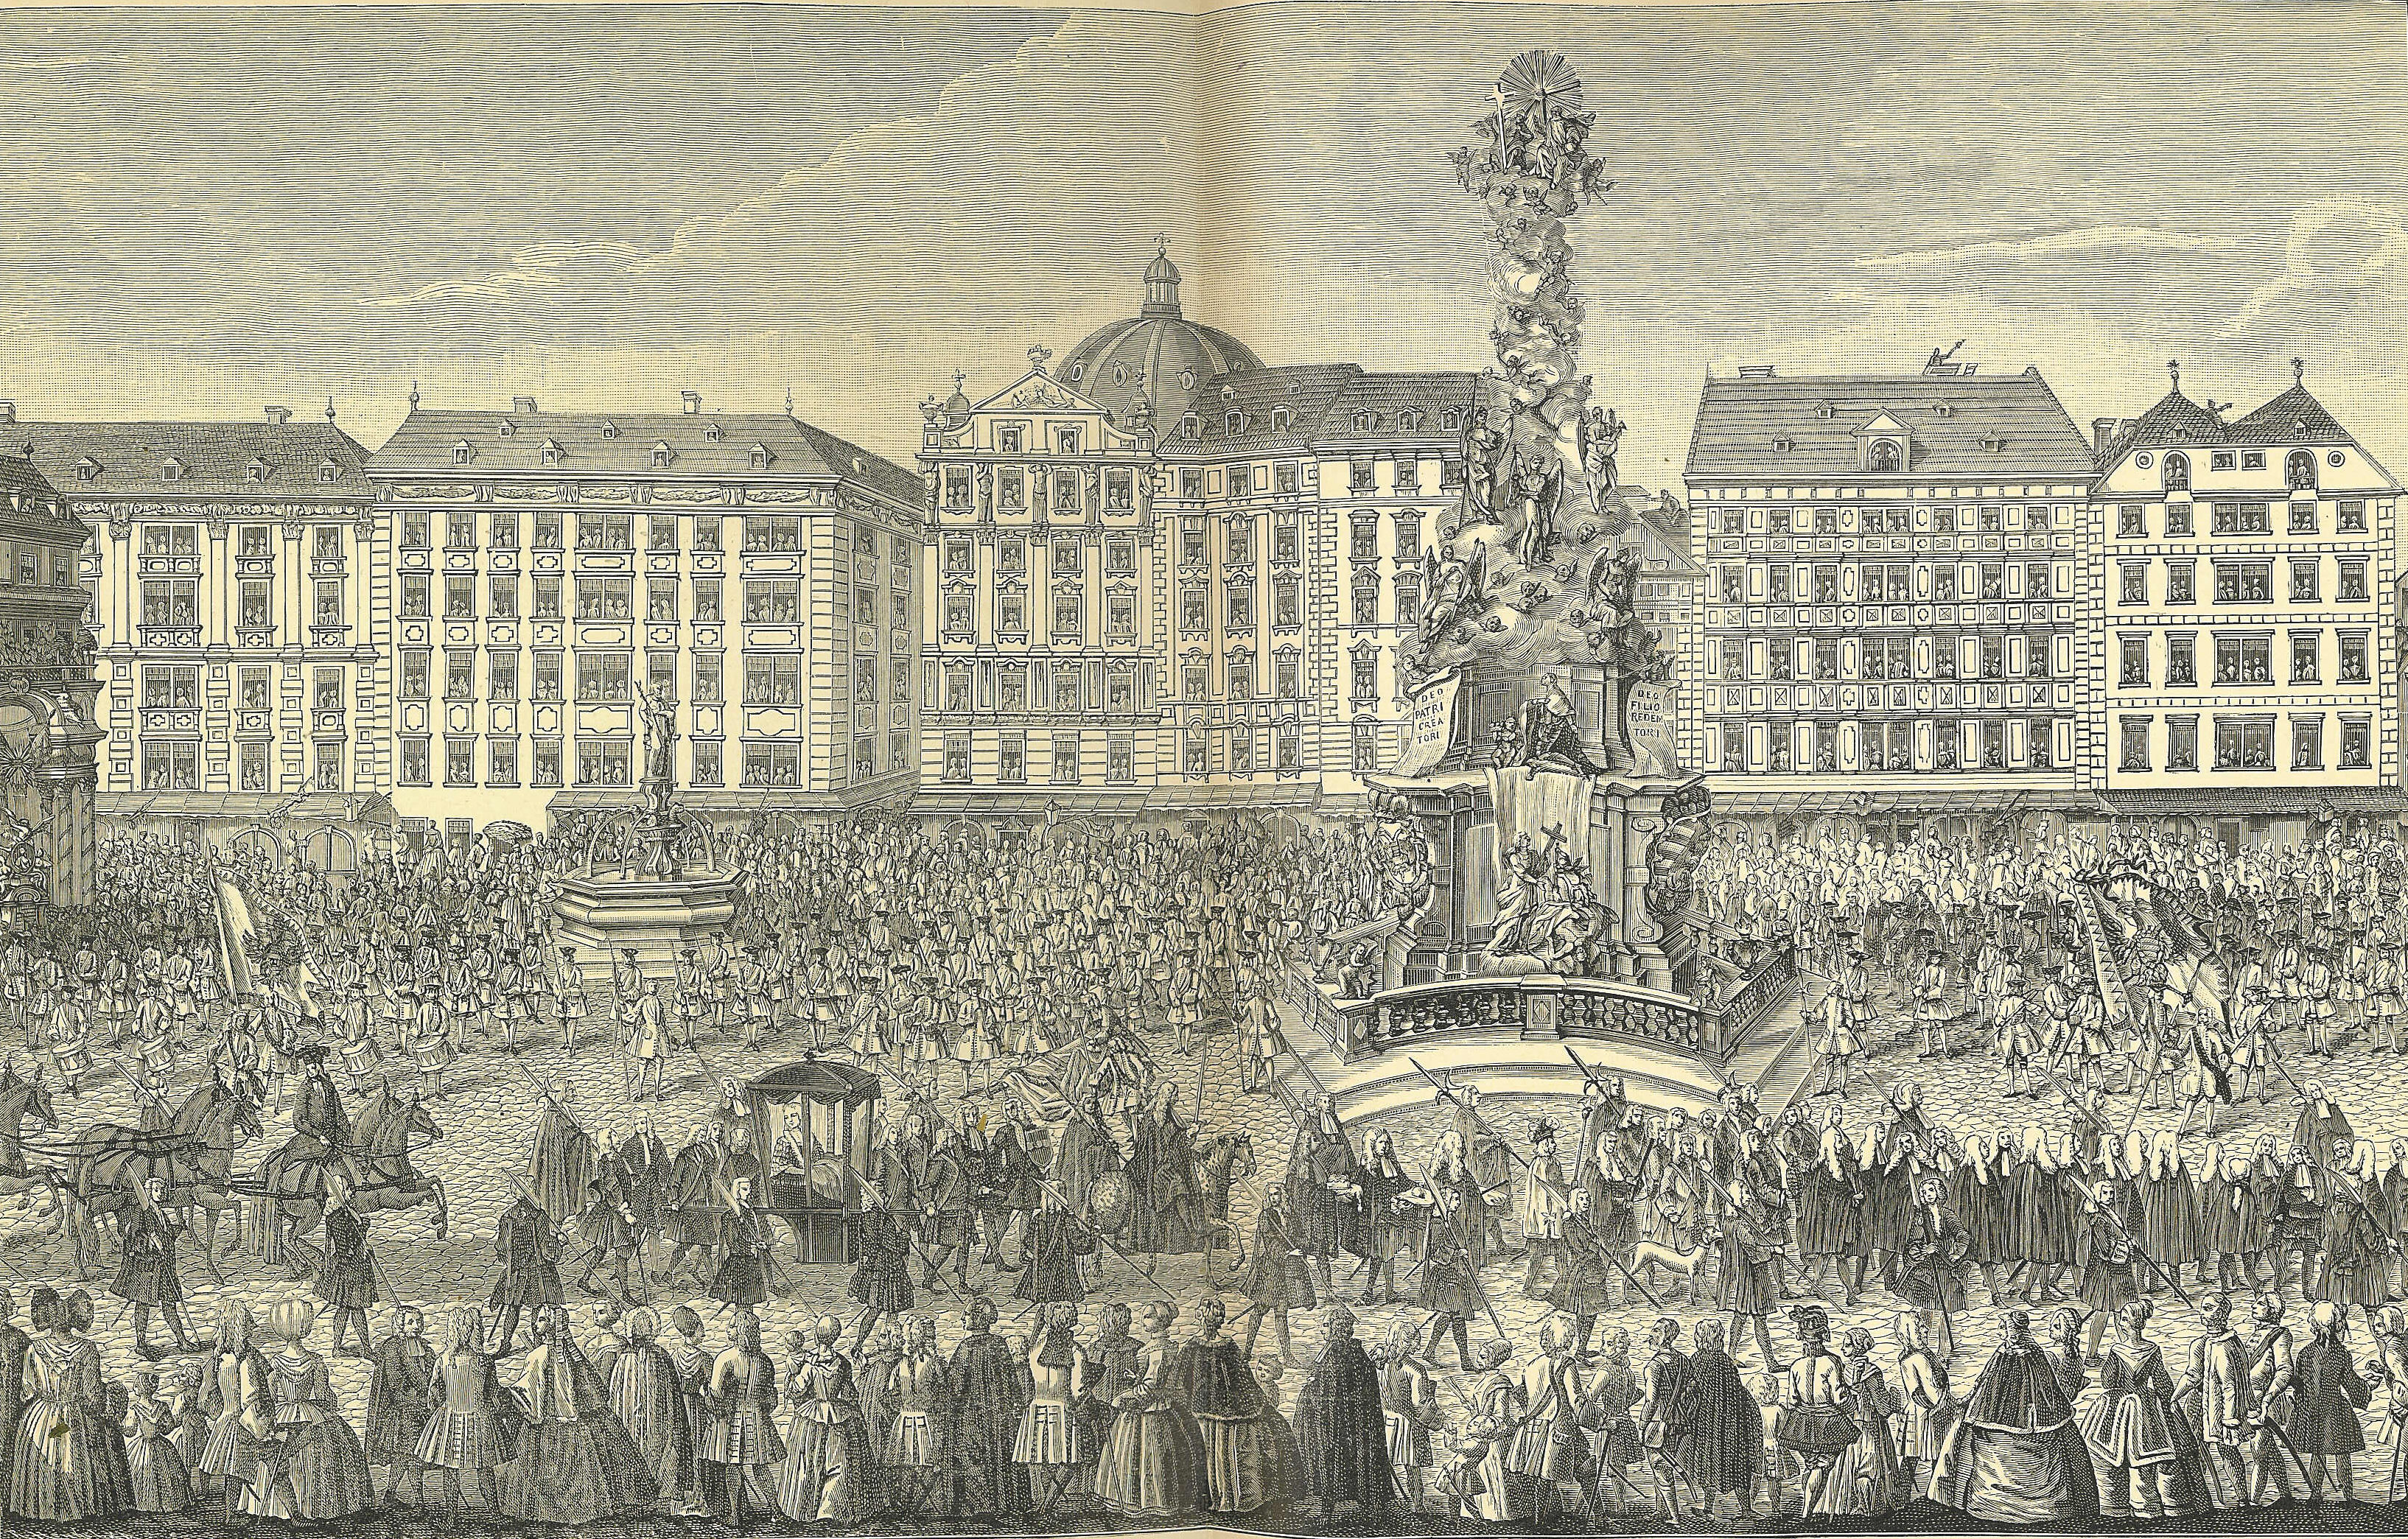 Procession of Maria Theresa at Vienna's Graben, 22 November 1740. A pregnant queen goes to Mass at the Cathedral of St. Stephen before receiving homage.